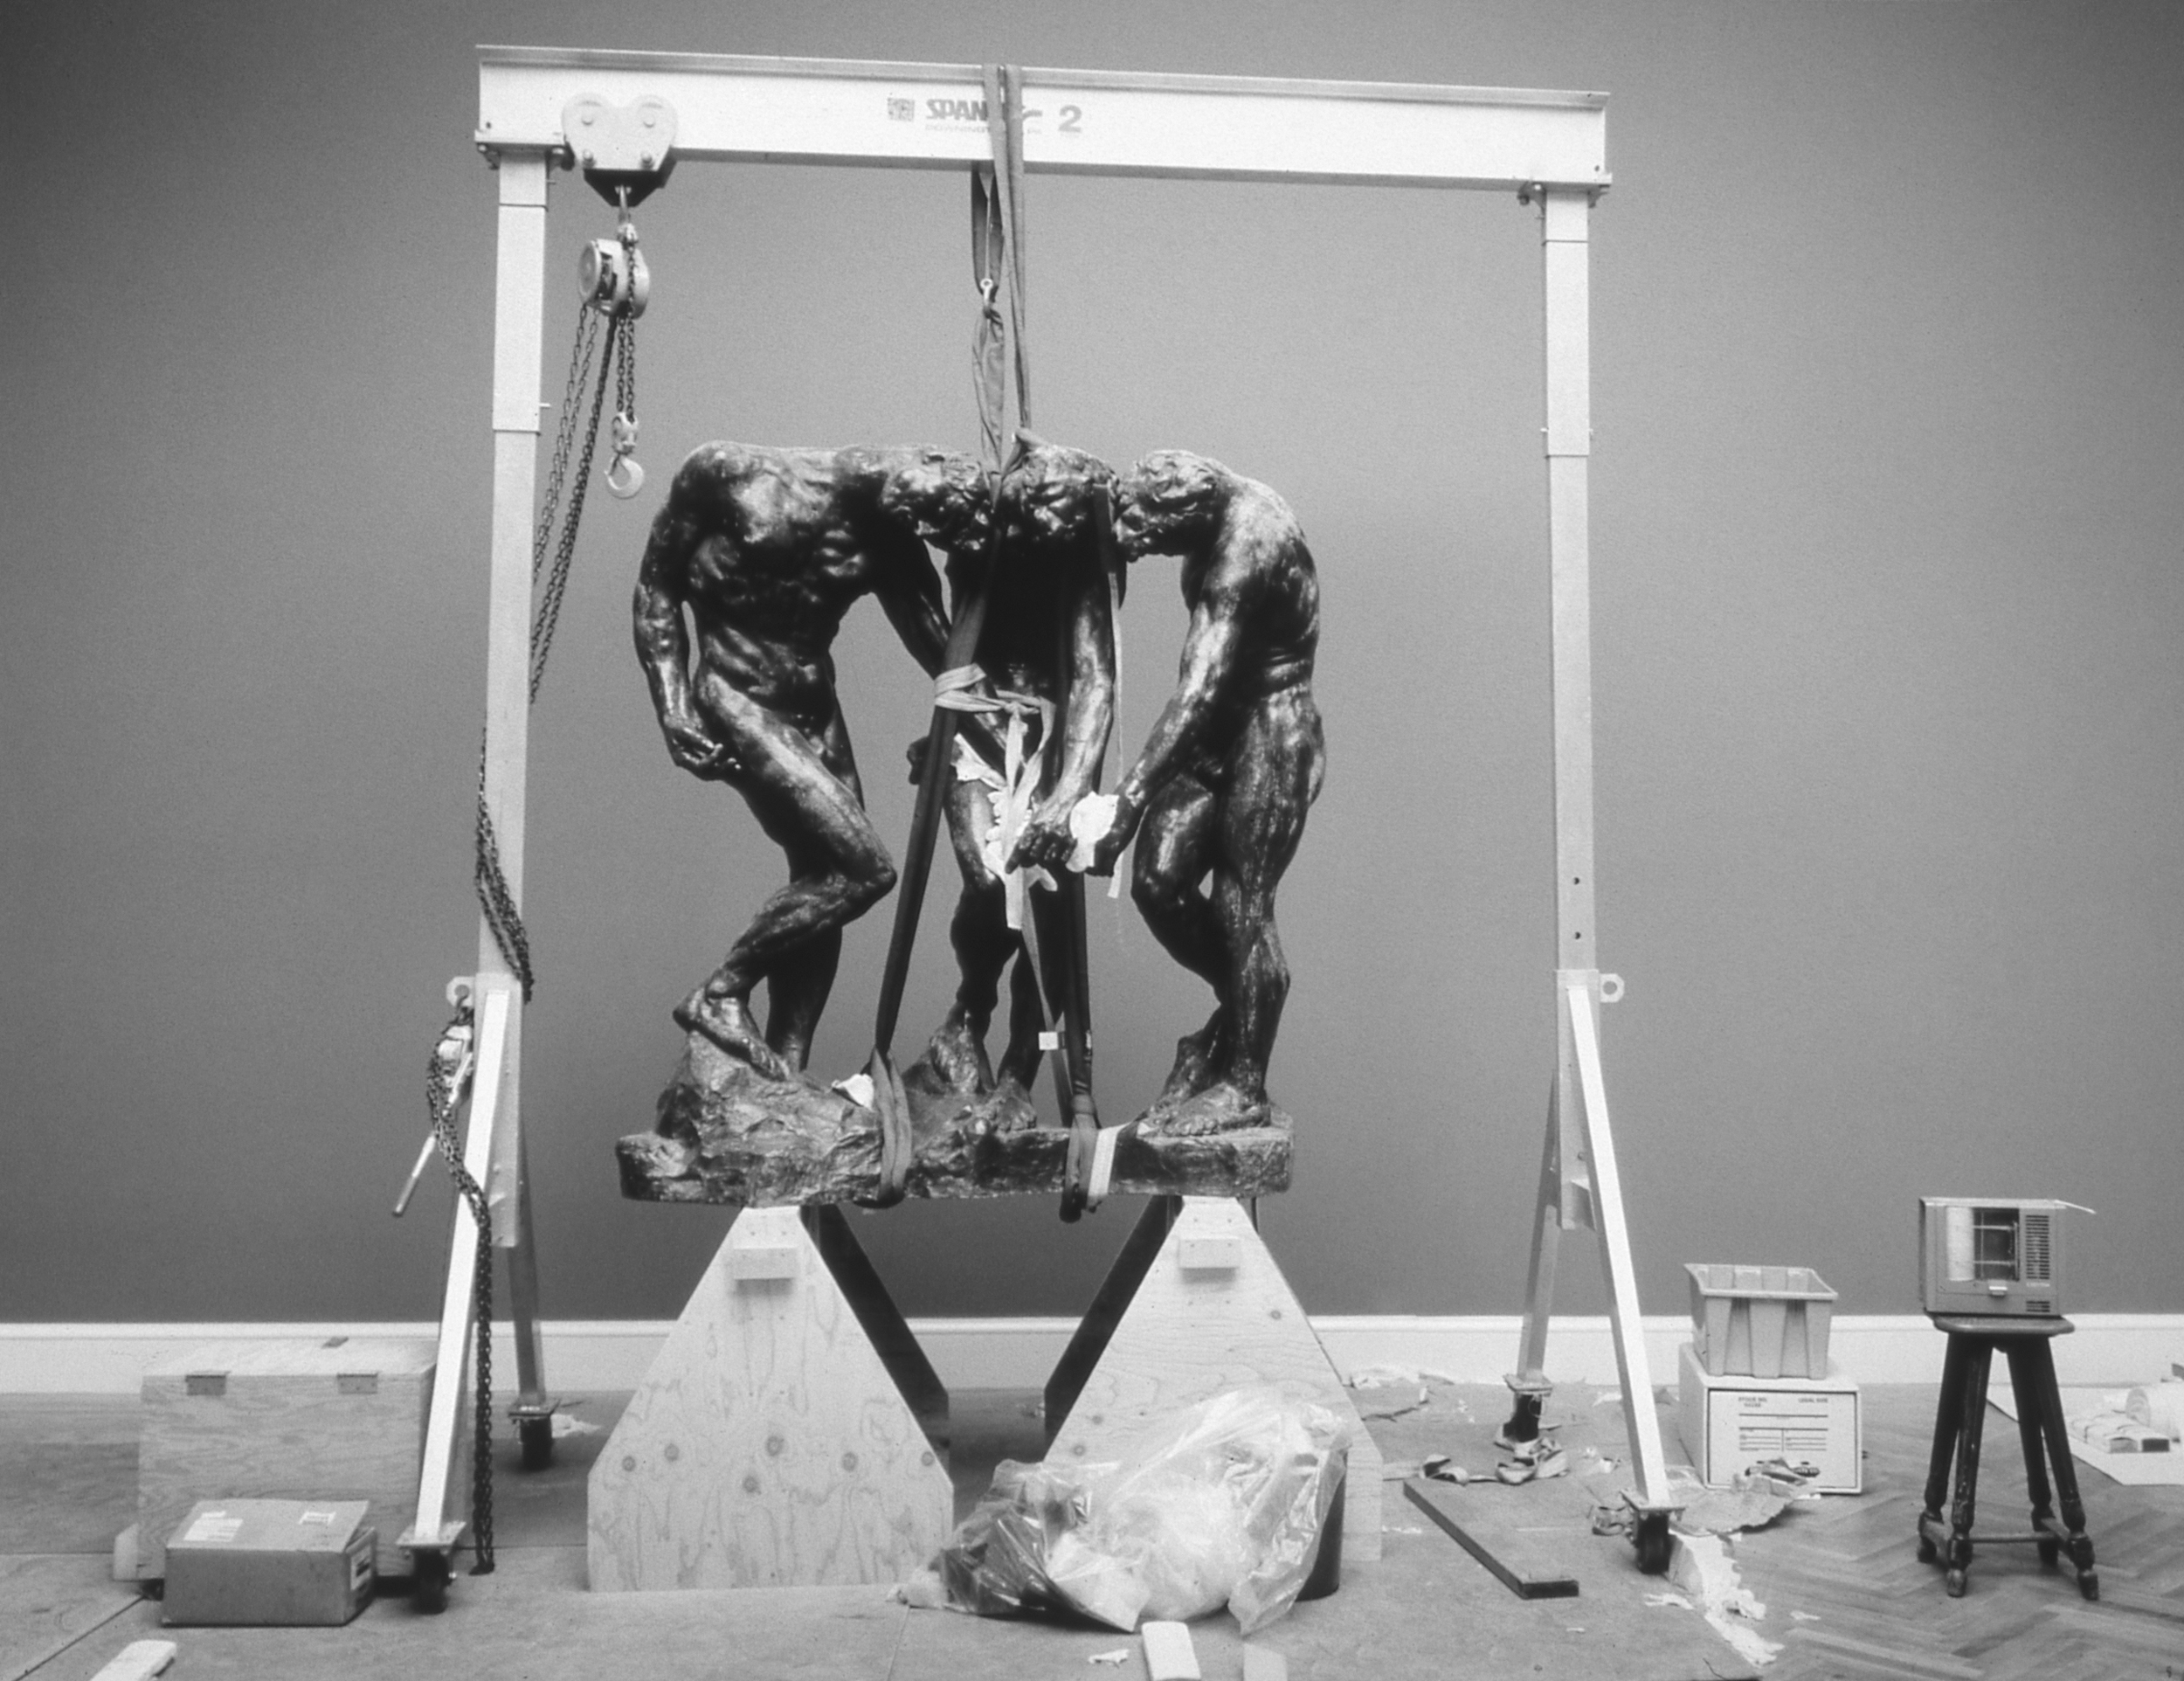 Hanging Sculpture, Rodin, 1995